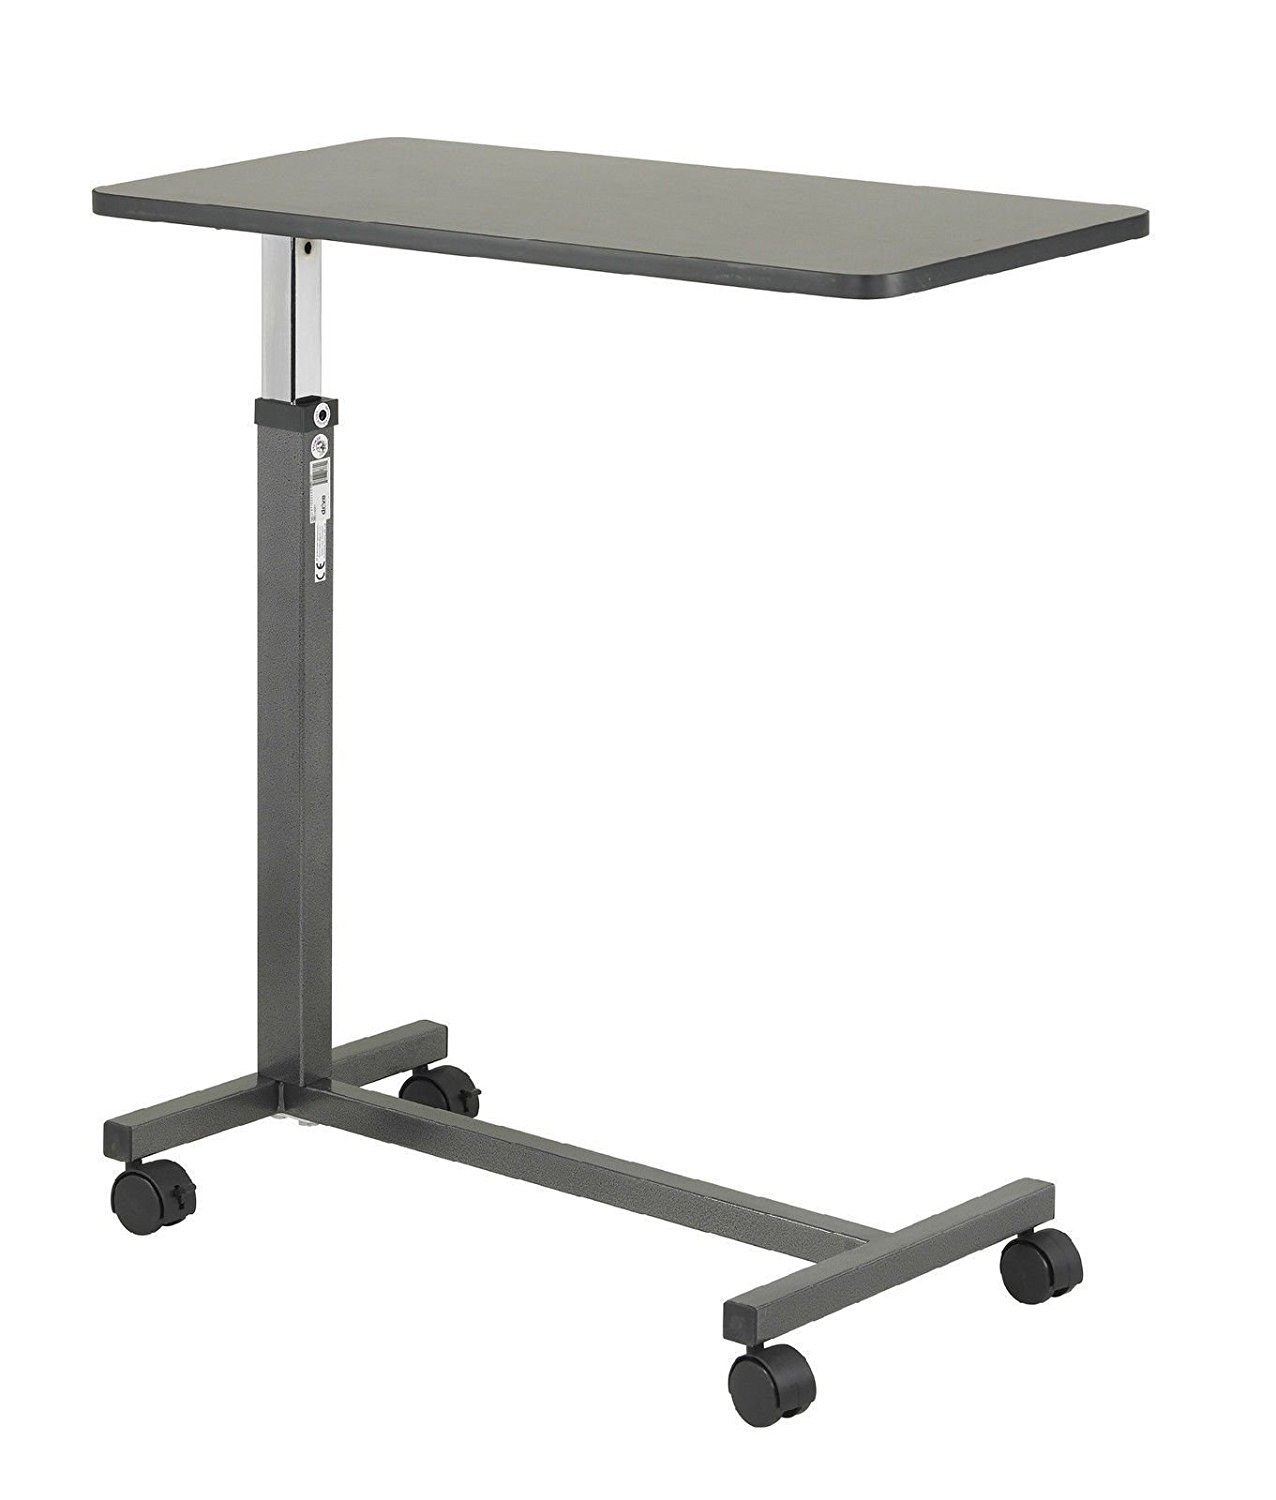 Generic de by Medicalmputer//Hosp Computer//Hospital Bed Tray Table Tray Bedside Overbed Non-Tilt by Medical Tray Table